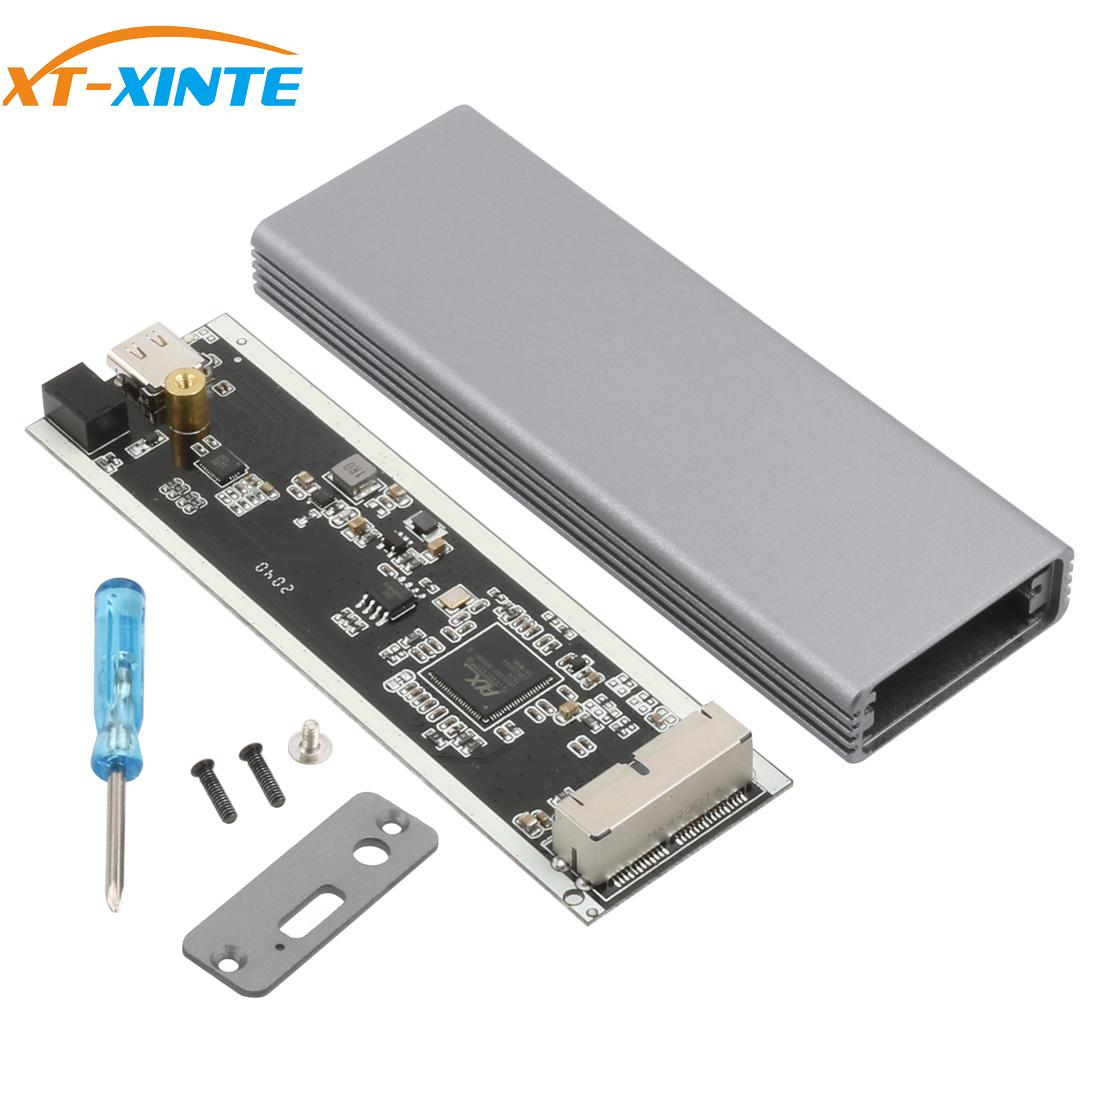 XT-XINTE Aluminum Alloy Type-C USB-C to 16+12 Pin Mobile Box HDD Enclosure for Air Pro 2013 2014 2015 2016 SSD Portable Case